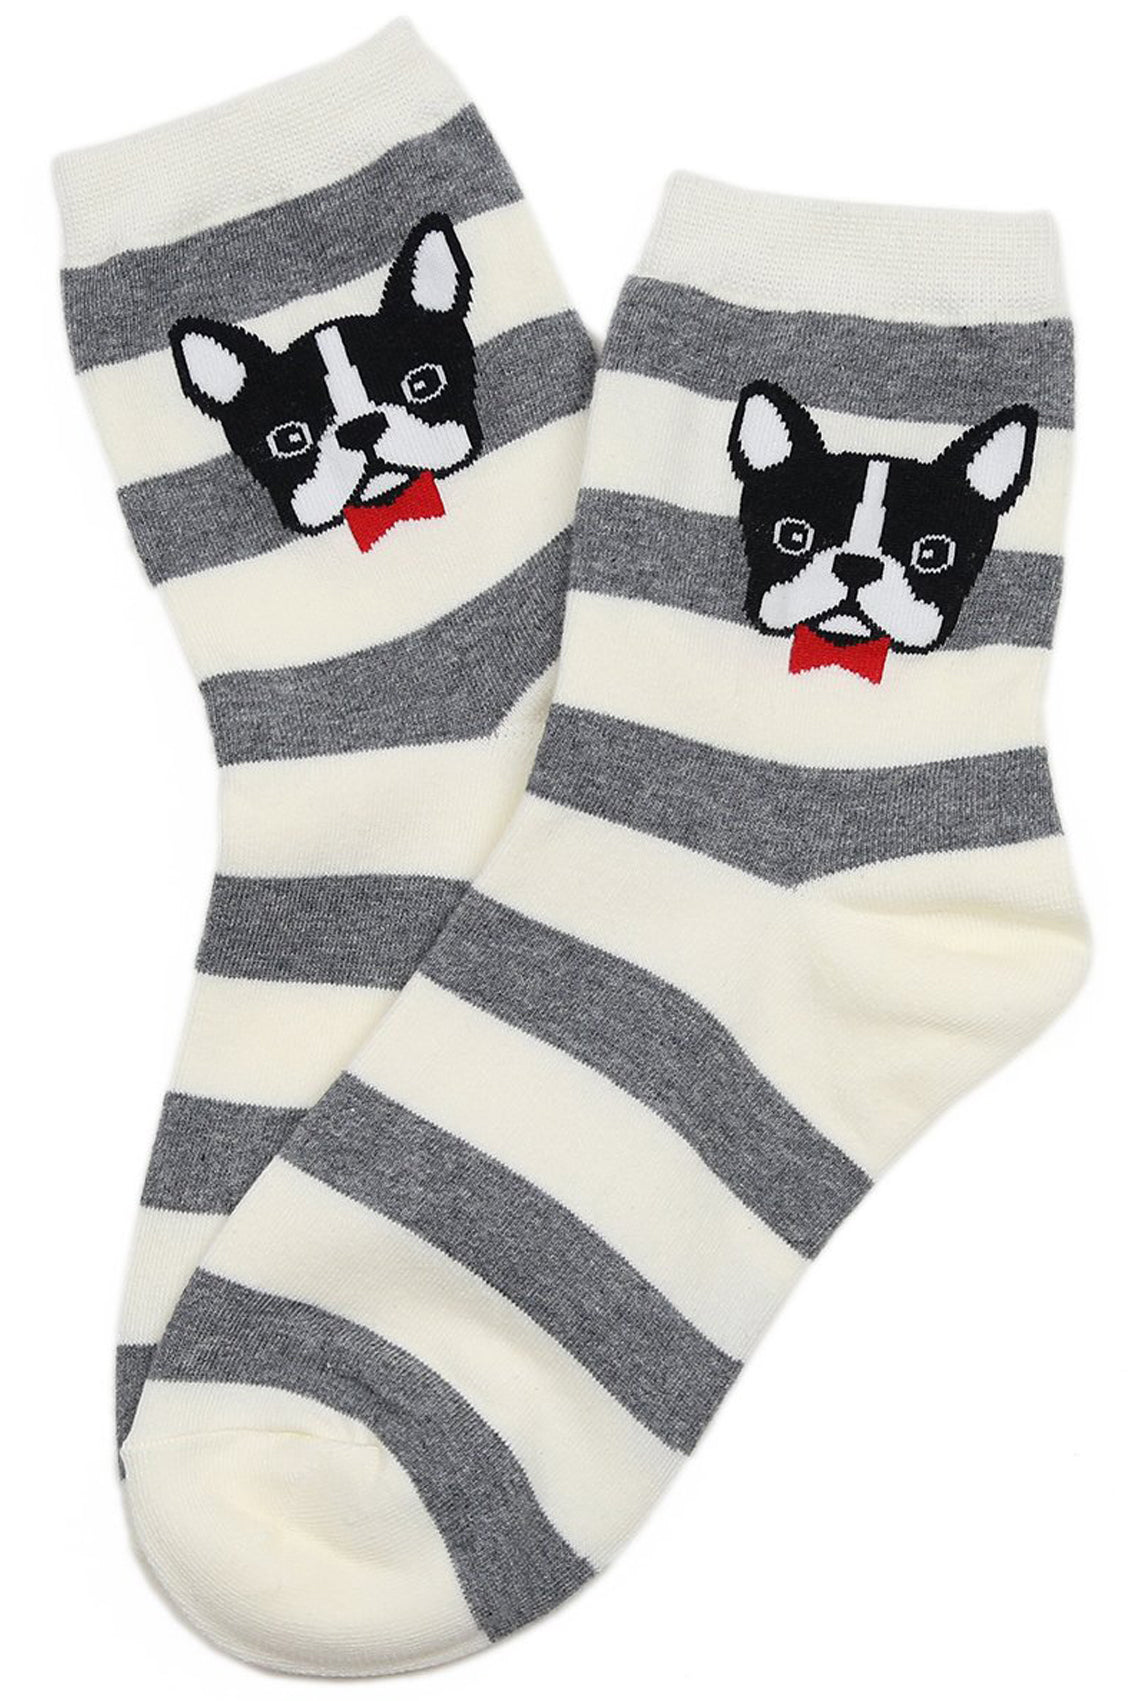 Bow Tie Pup Cotton Socks Grey